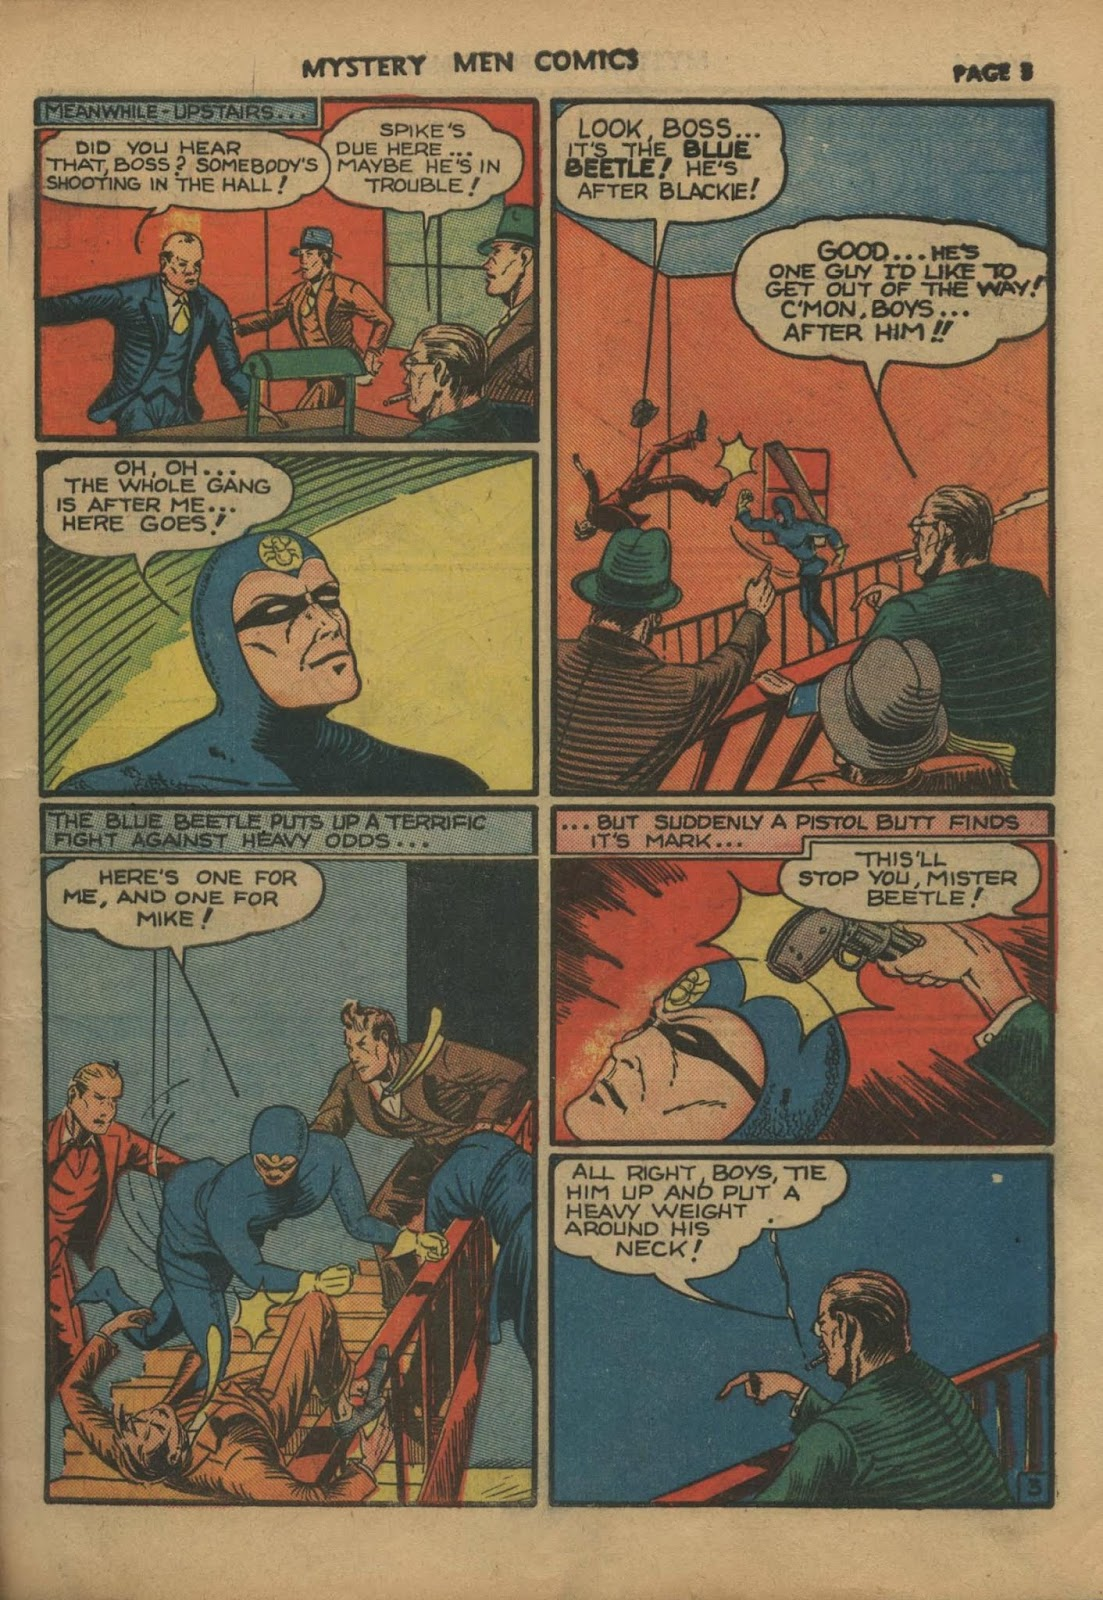 Mystery Men Comics issue 10 - Page 5